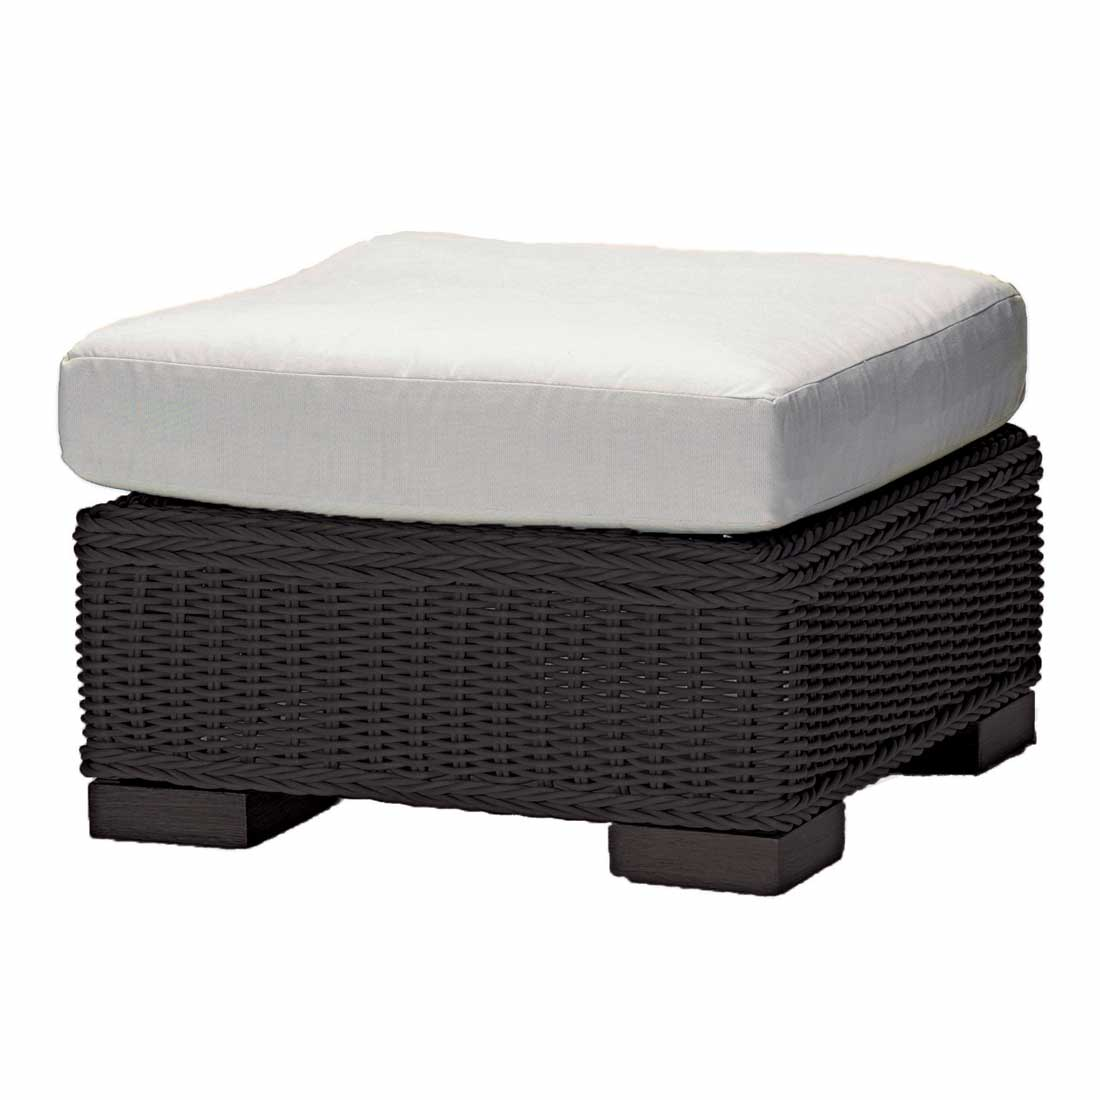 gray patio chair covers custom gaming chairs rustic outdoor wicker ottoman